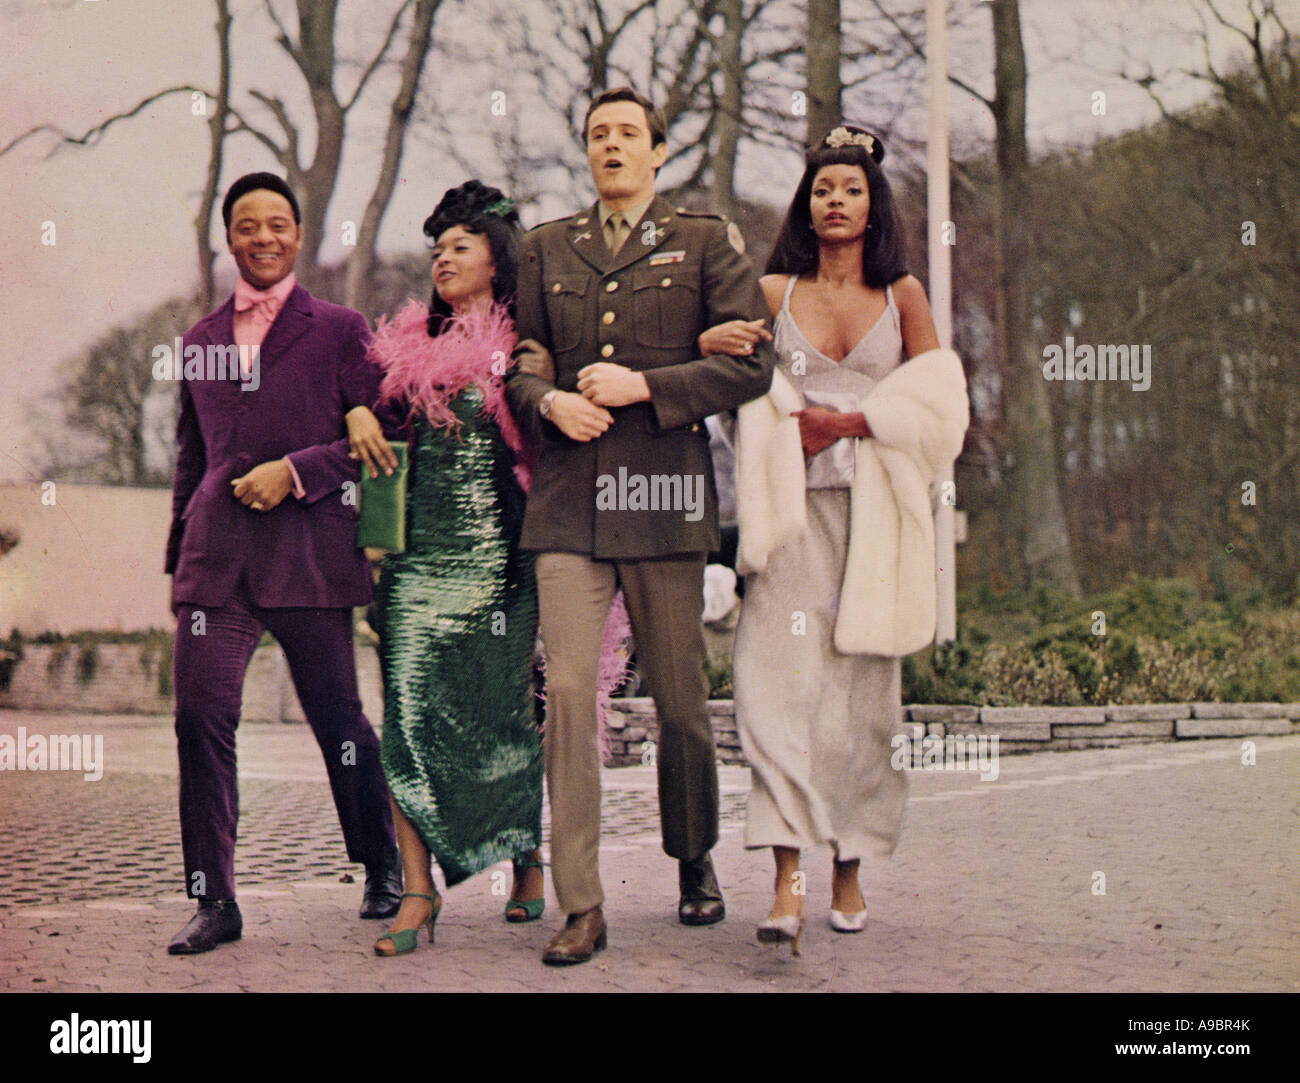 WELCOME TO THE CLUB - 1970 satirical comedy film shot in Copenhagen - Stock Image